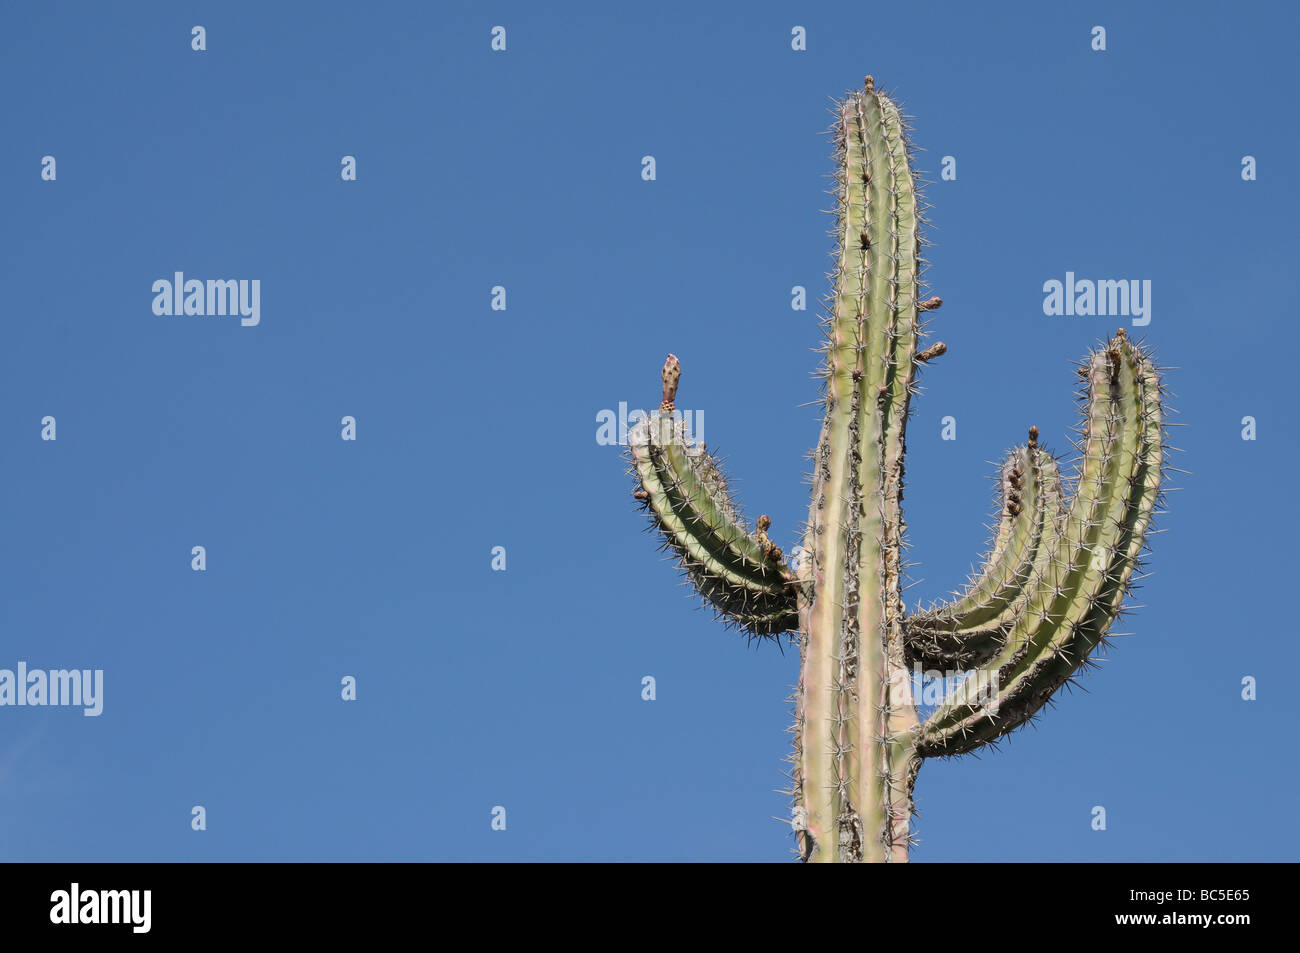 Giant cactus in the desert against a blue sky - Stock Image